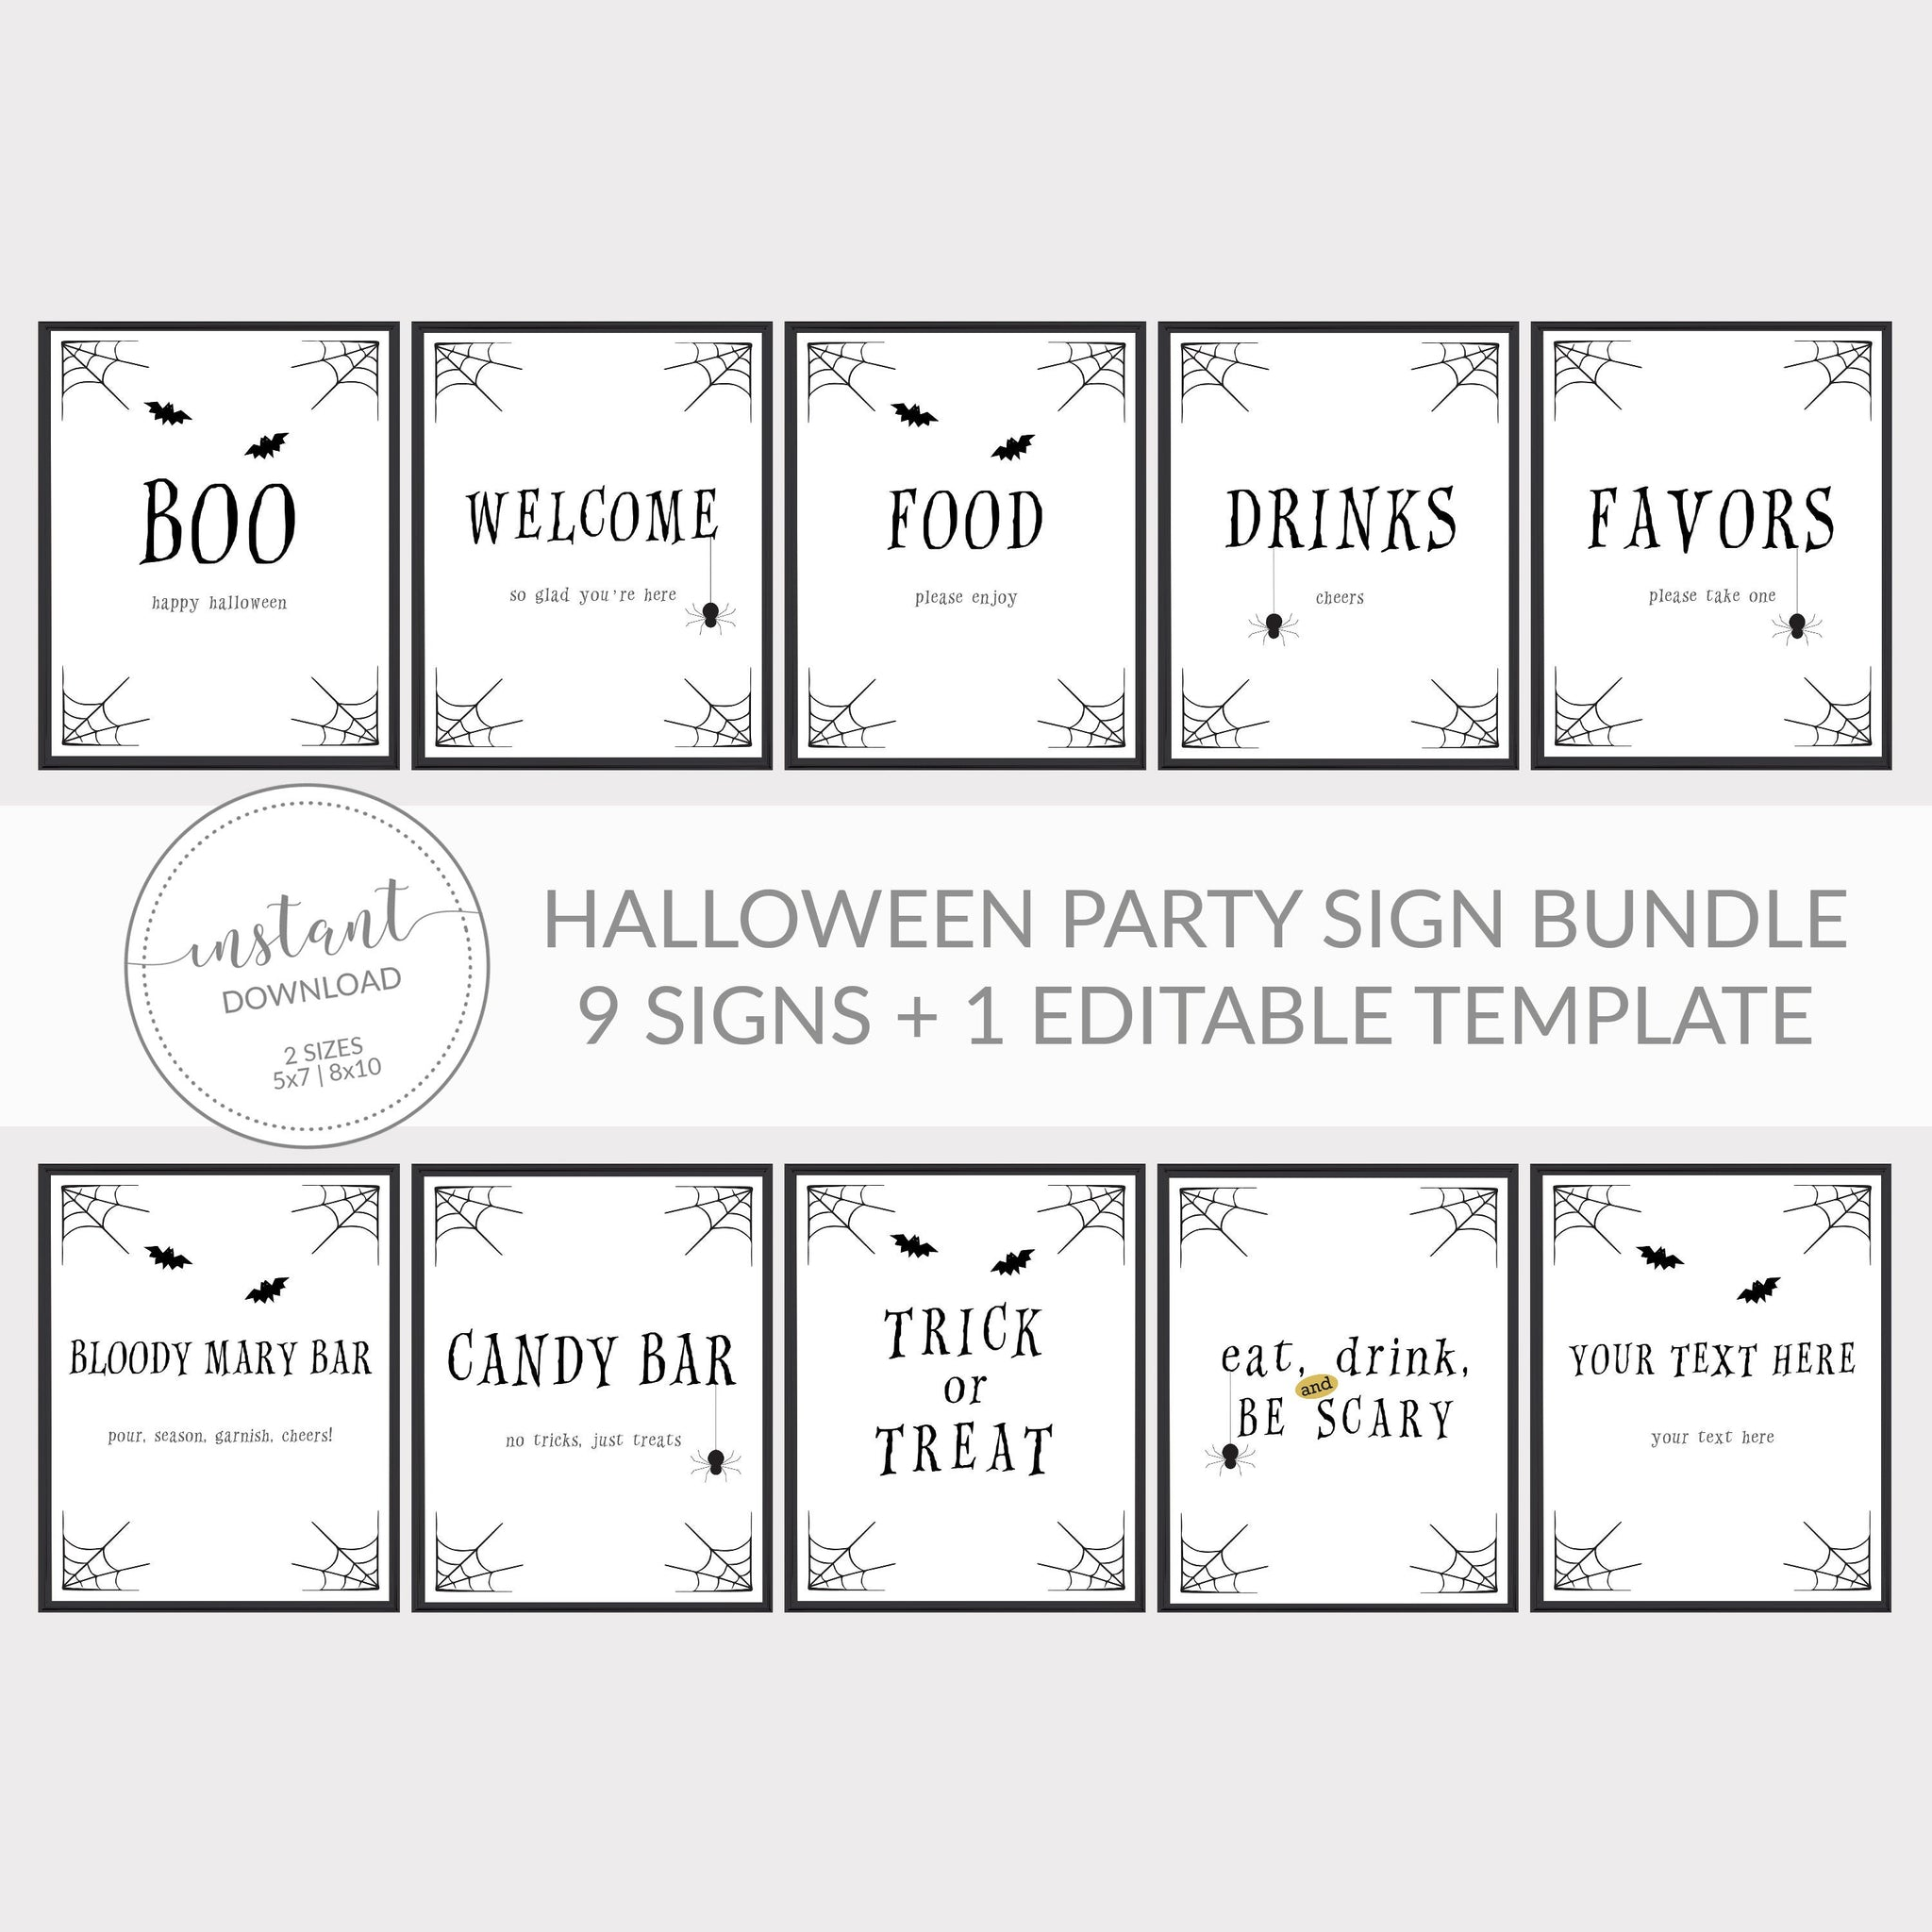 Halloween Party Printable Sign Bundle, Halloween Party Decor, Halloween Signs, Halloween Birthday Party Decor, INSTANT DOWNLOAD - EDS100 - @PlumPolkaDot